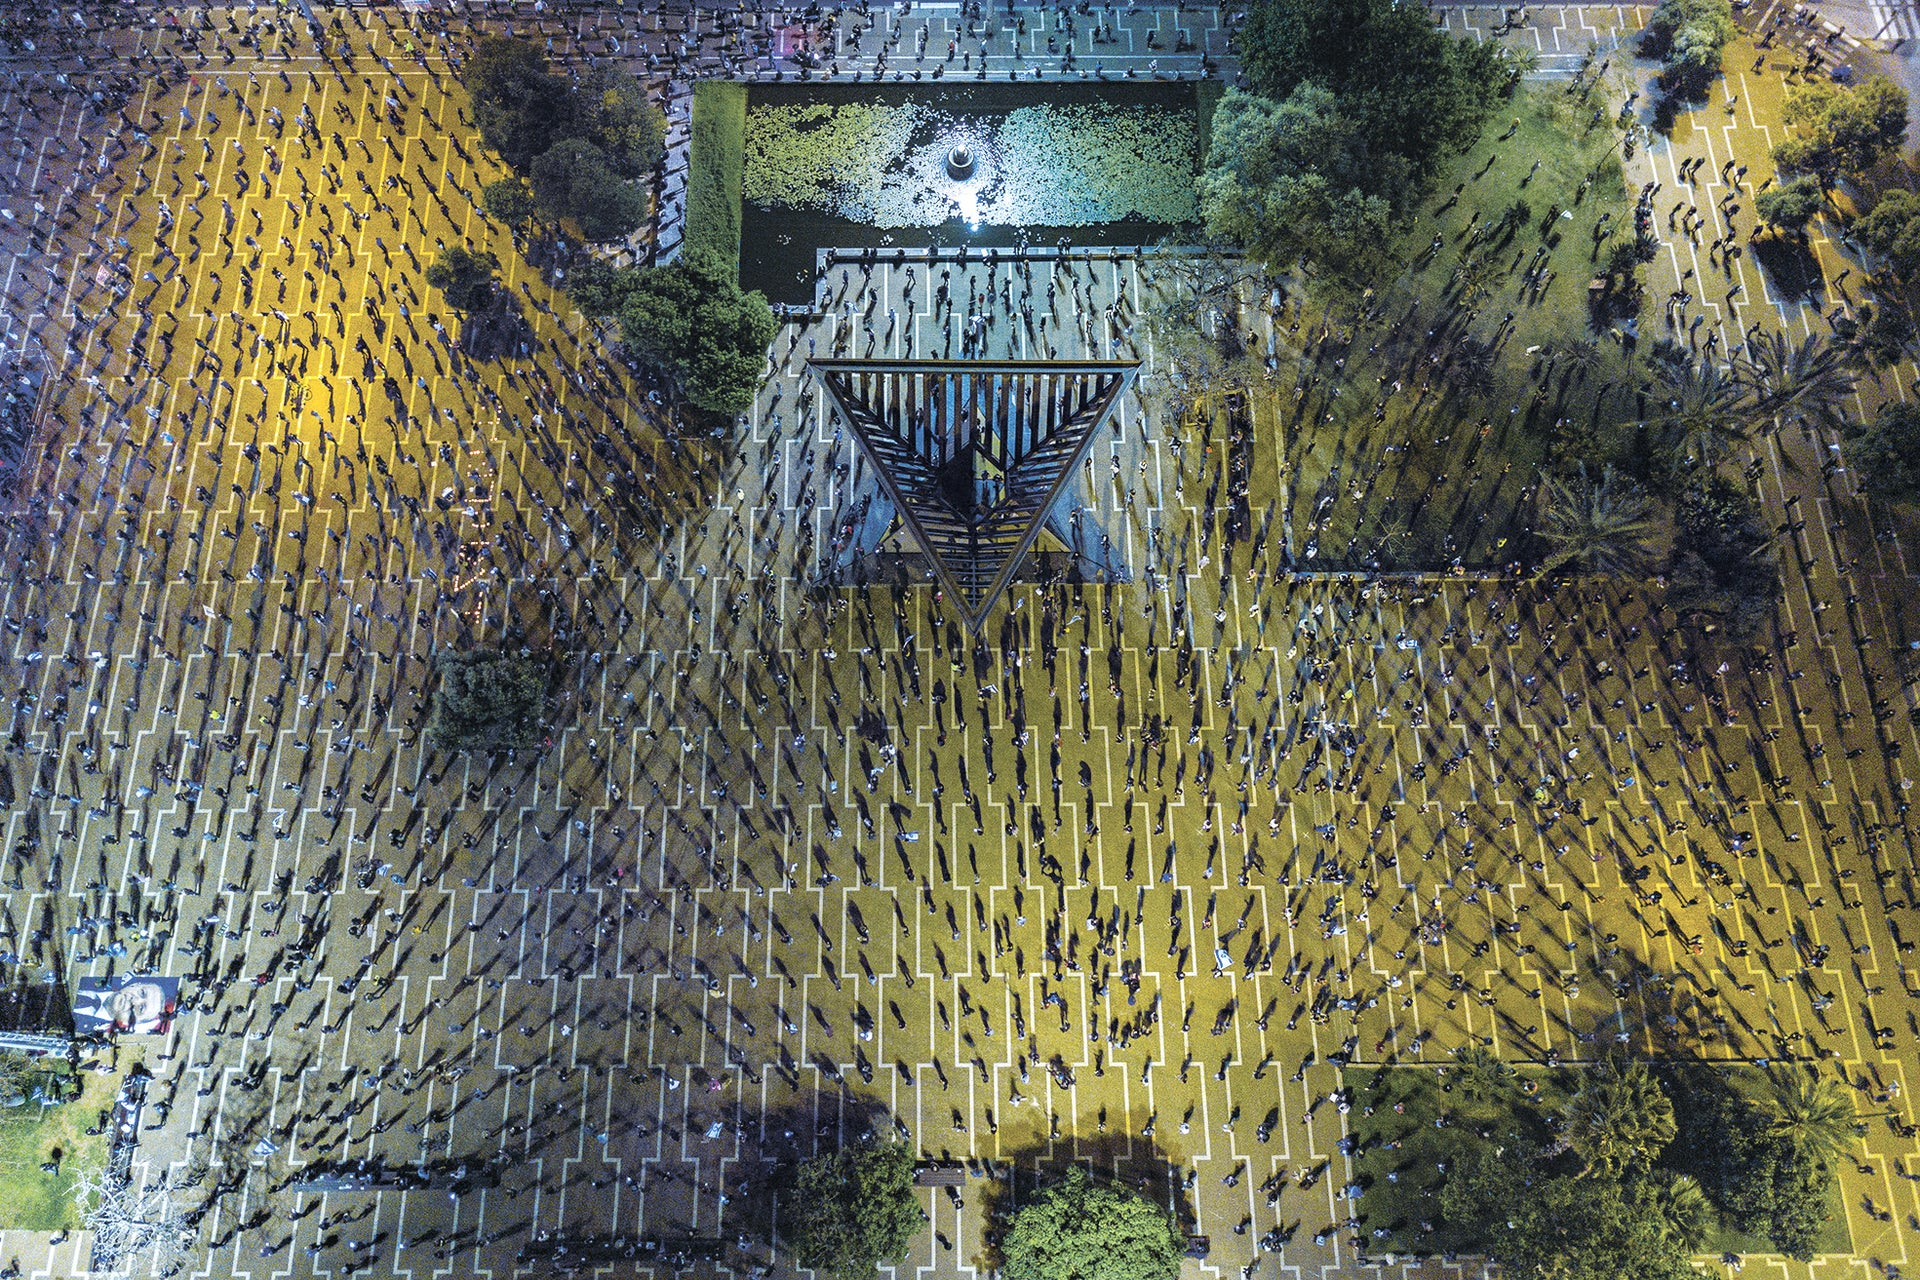 Tomer Appelbaum's drone photo that won him a 2020 Siena Award: Rabin Square during a protest against the Netanyahu government's handling of the coronavirus crisis.